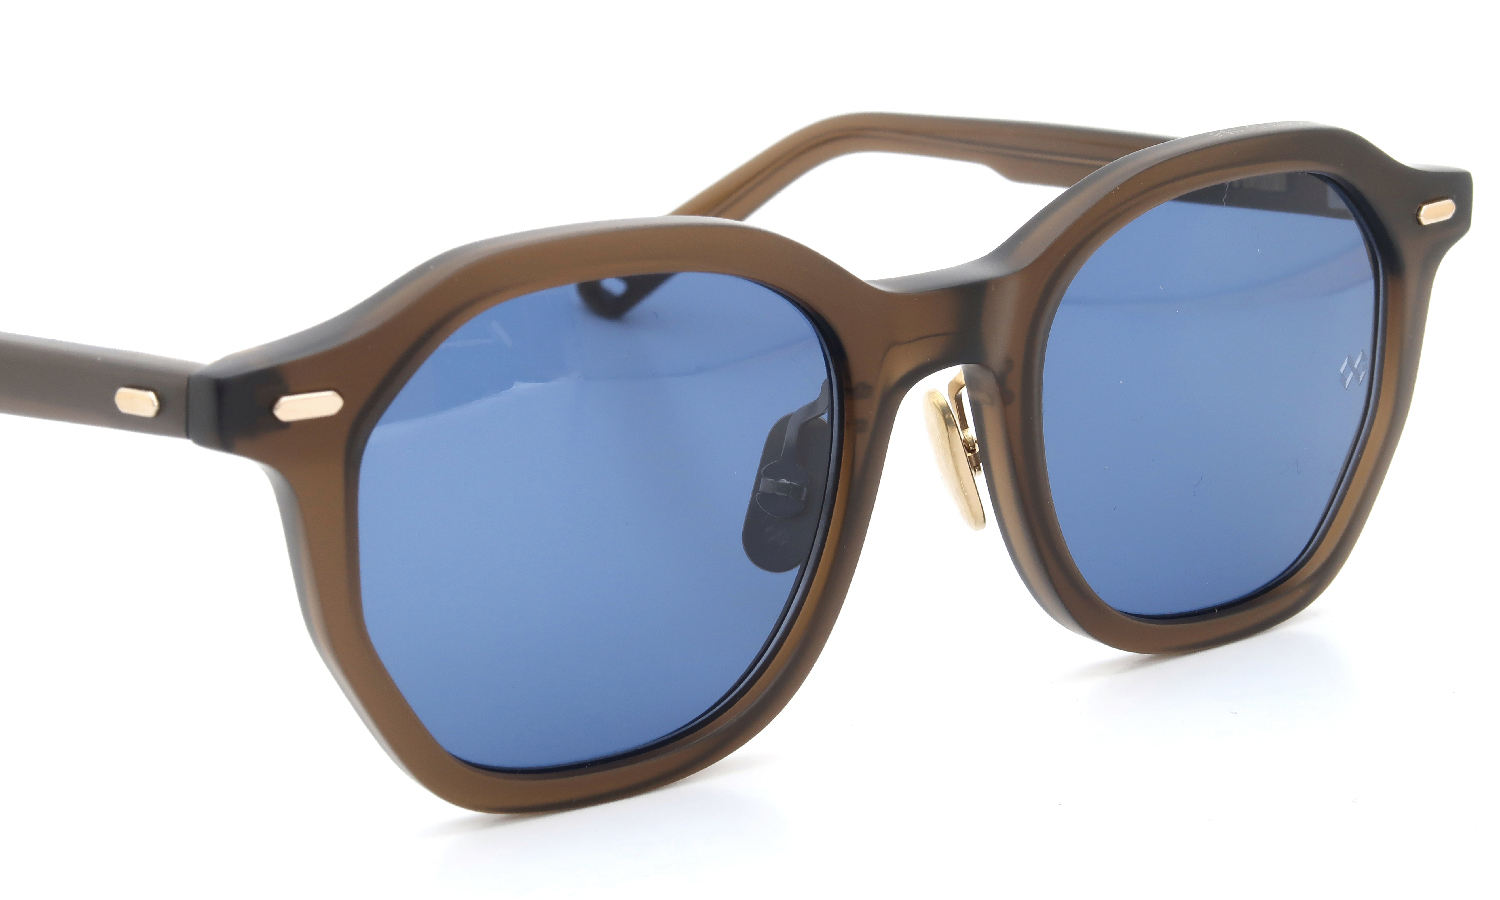 OG × OLIVER GOLDSMITH Re:BETSY 49 SG リ:ベッツィ 6